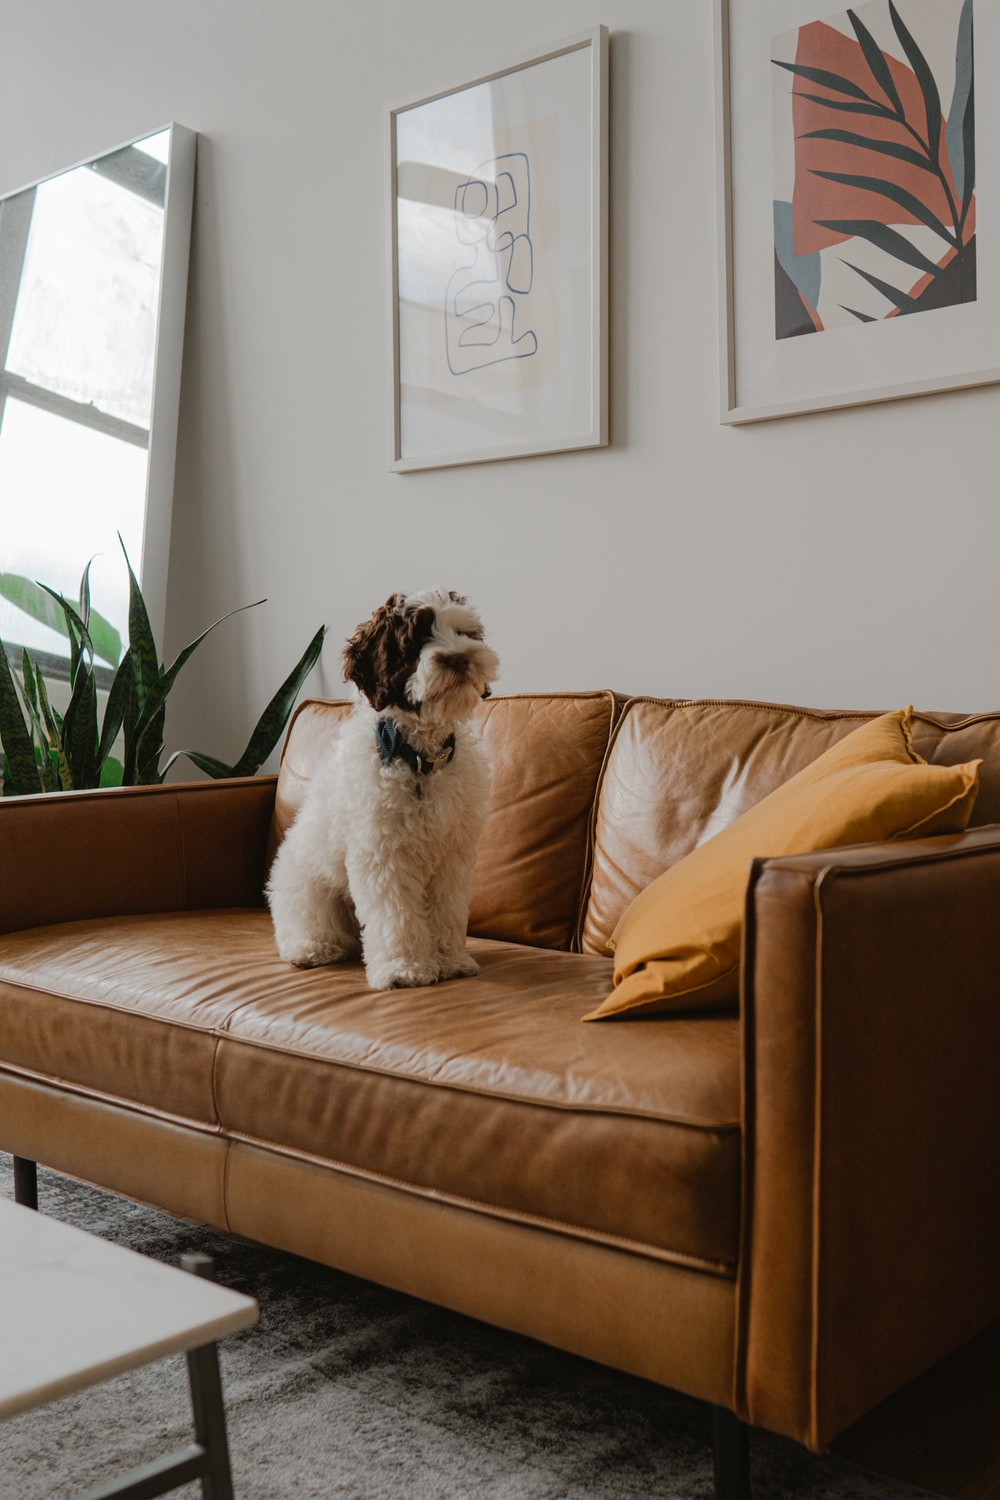 white and brown long coated dog on brown couch